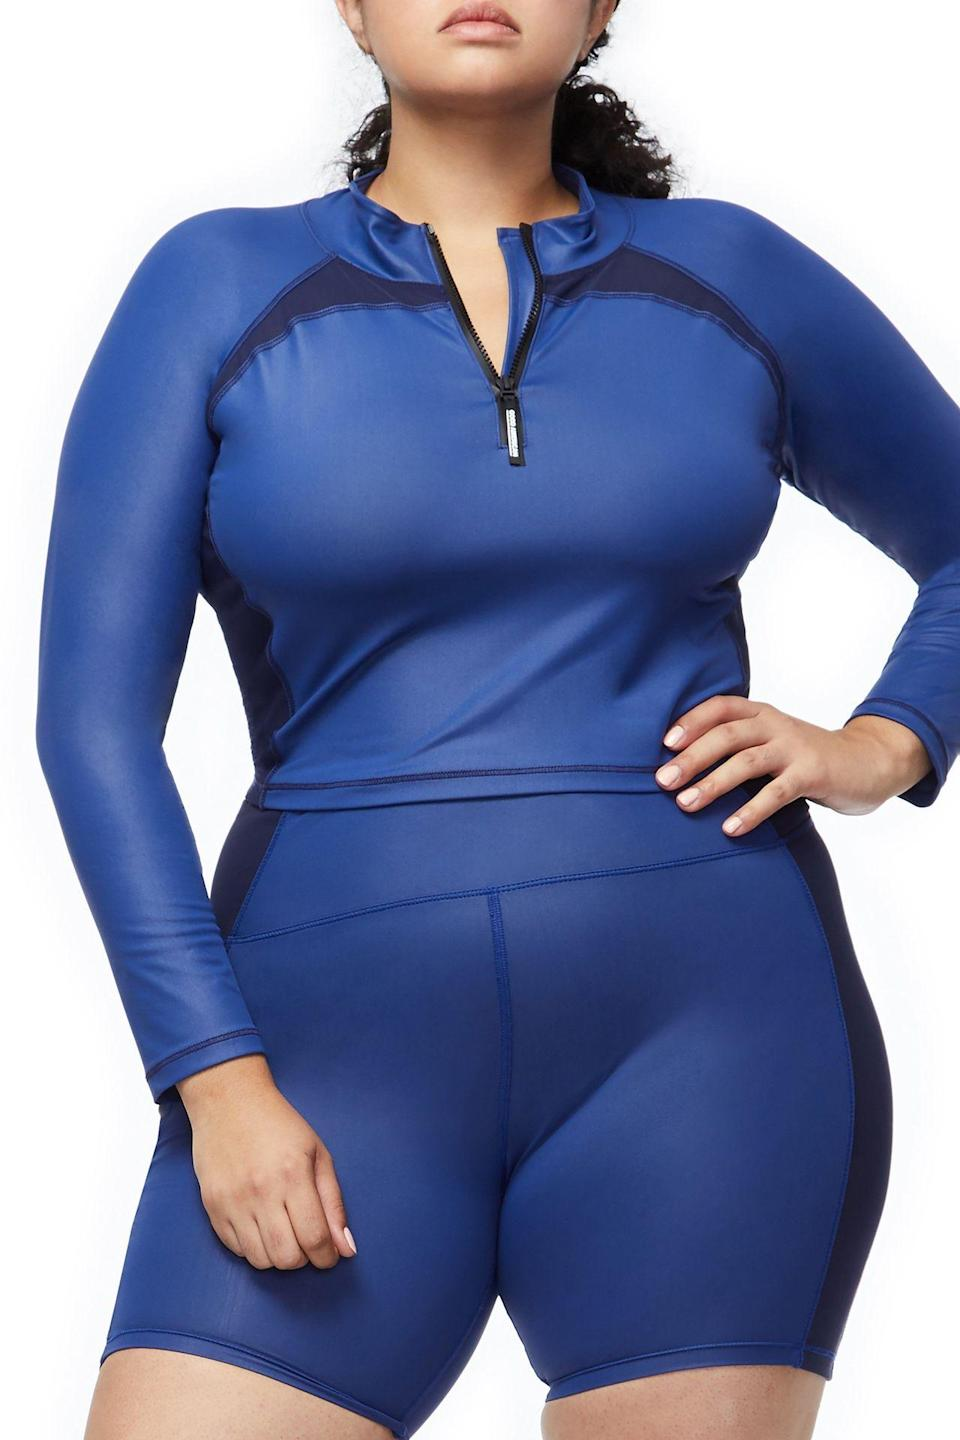 "<p>I am getting scuba vibes with this long-sleeved, high-neck crop top and matching shorts. It will also look awesome if you pair it with leggings for those colder days.<br><a href=""https://fave.co/2SxmYPe"" rel=""nofollow noopener"" target=""_blank"" data-ylk=""slk:Shop it:"" class=""link rapid-noclick-resp""><strong>Shop it:</strong> </a>The Power Crop Top, $95 (take 25% off with code EXTRA25), <a href=""https://fave.co/2SxmYPe"" rel=""nofollow noopener"" target=""_blank"" data-ylk=""slk:goodamerican.com"" class=""link rapid-noclick-resp"">goodamerican.com</a><br><a href=""https://fave.co/2Av6M9U"" rel=""nofollow noopener"" target=""_blank"" data-ylk=""slk:Shop it:"" class=""link rapid-noclick-resp""><strong>Shop it:</strong> </a>The Boy Short, $75 (take 25% off with code EXTRA25), <a href=""https://fave.co/2Av6M9U"" rel=""nofollow noopener"" target=""_blank"" data-ylk=""slk:goodamerican.com"" class=""link rapid-noclick-resp"">goodamerican.com</a> </p>"